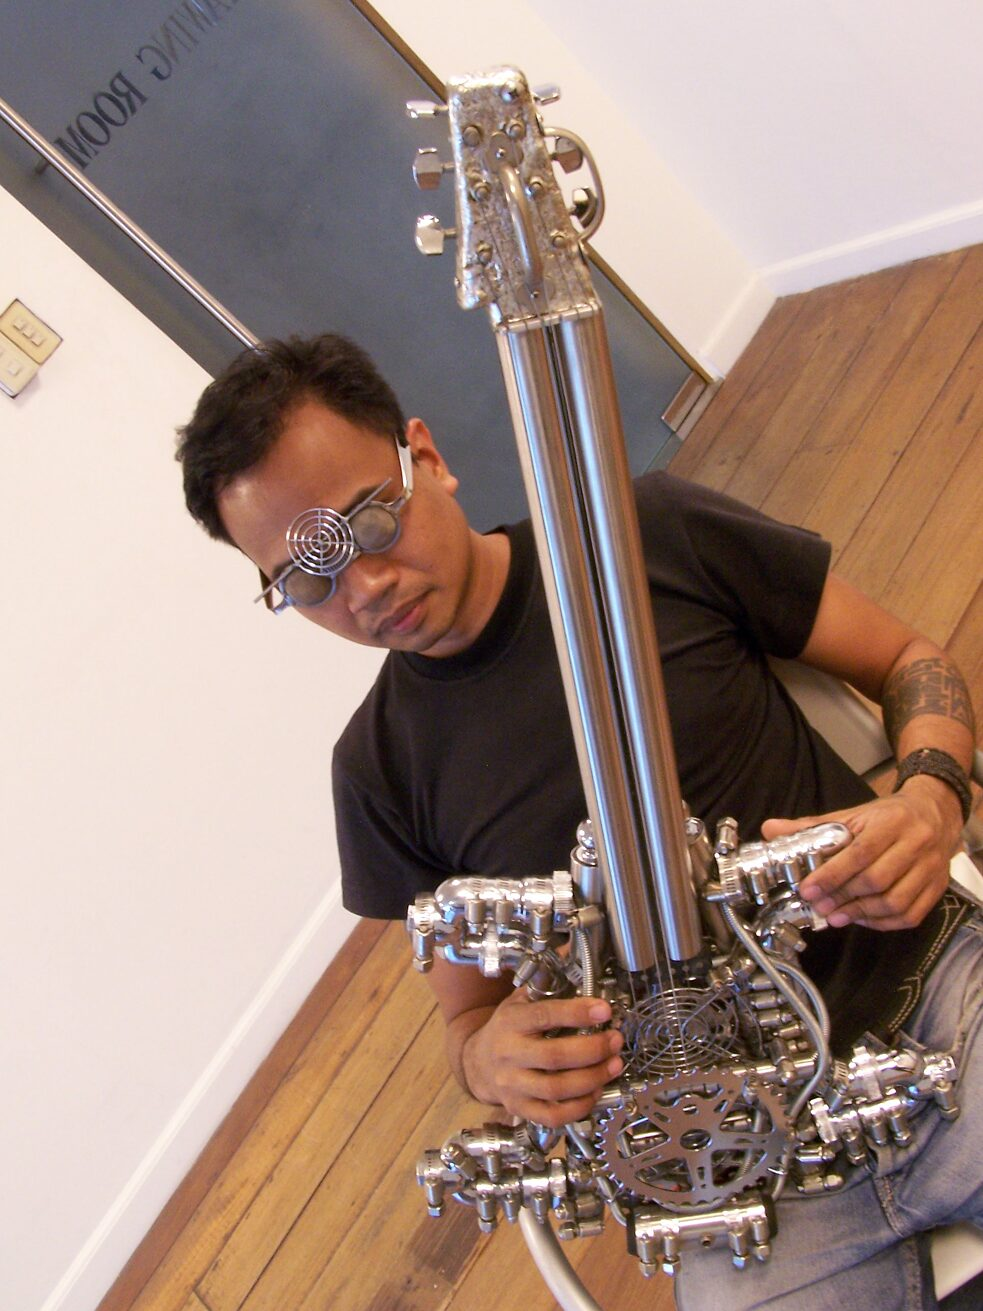 Lirio Salvador with some of his homemade devices (glasses, guitar).